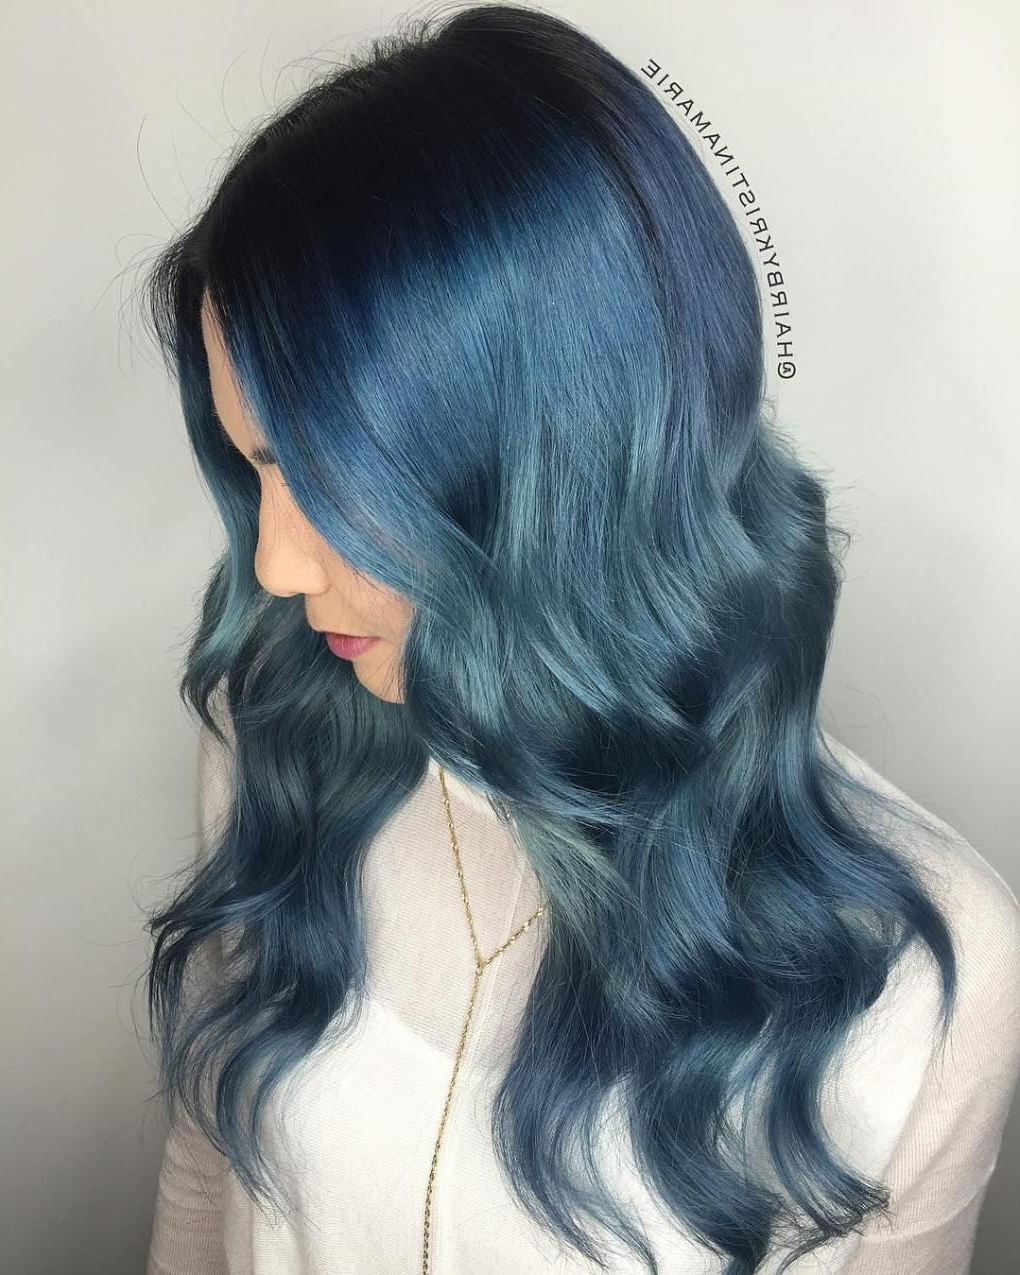 All In 2020 Black And Denim Blue Waves Hairstyles (View 6 of 20)